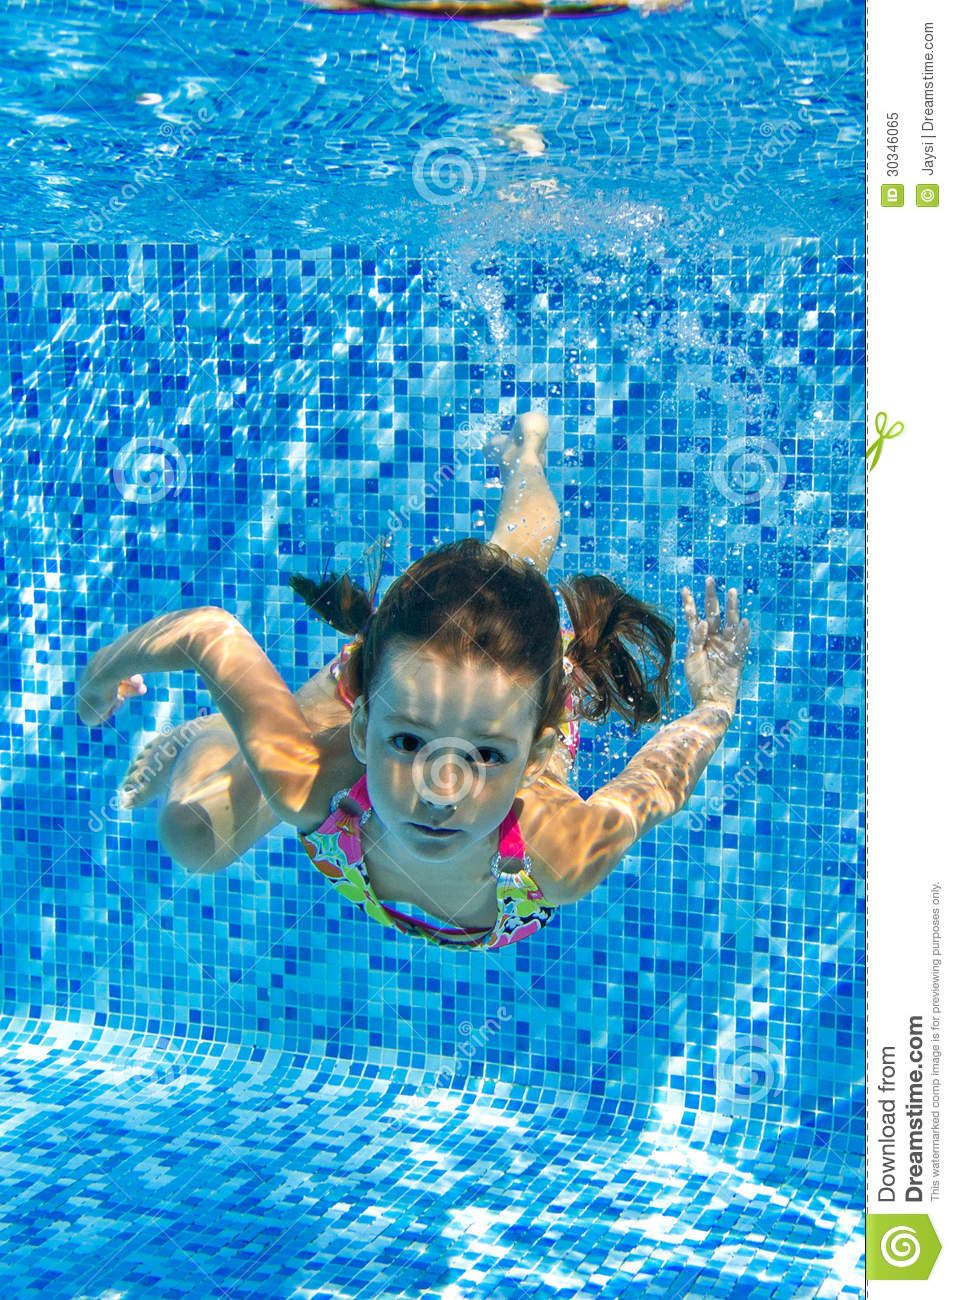 Smiling Child Swims Underwater In Pool Royalty Free Stock ...